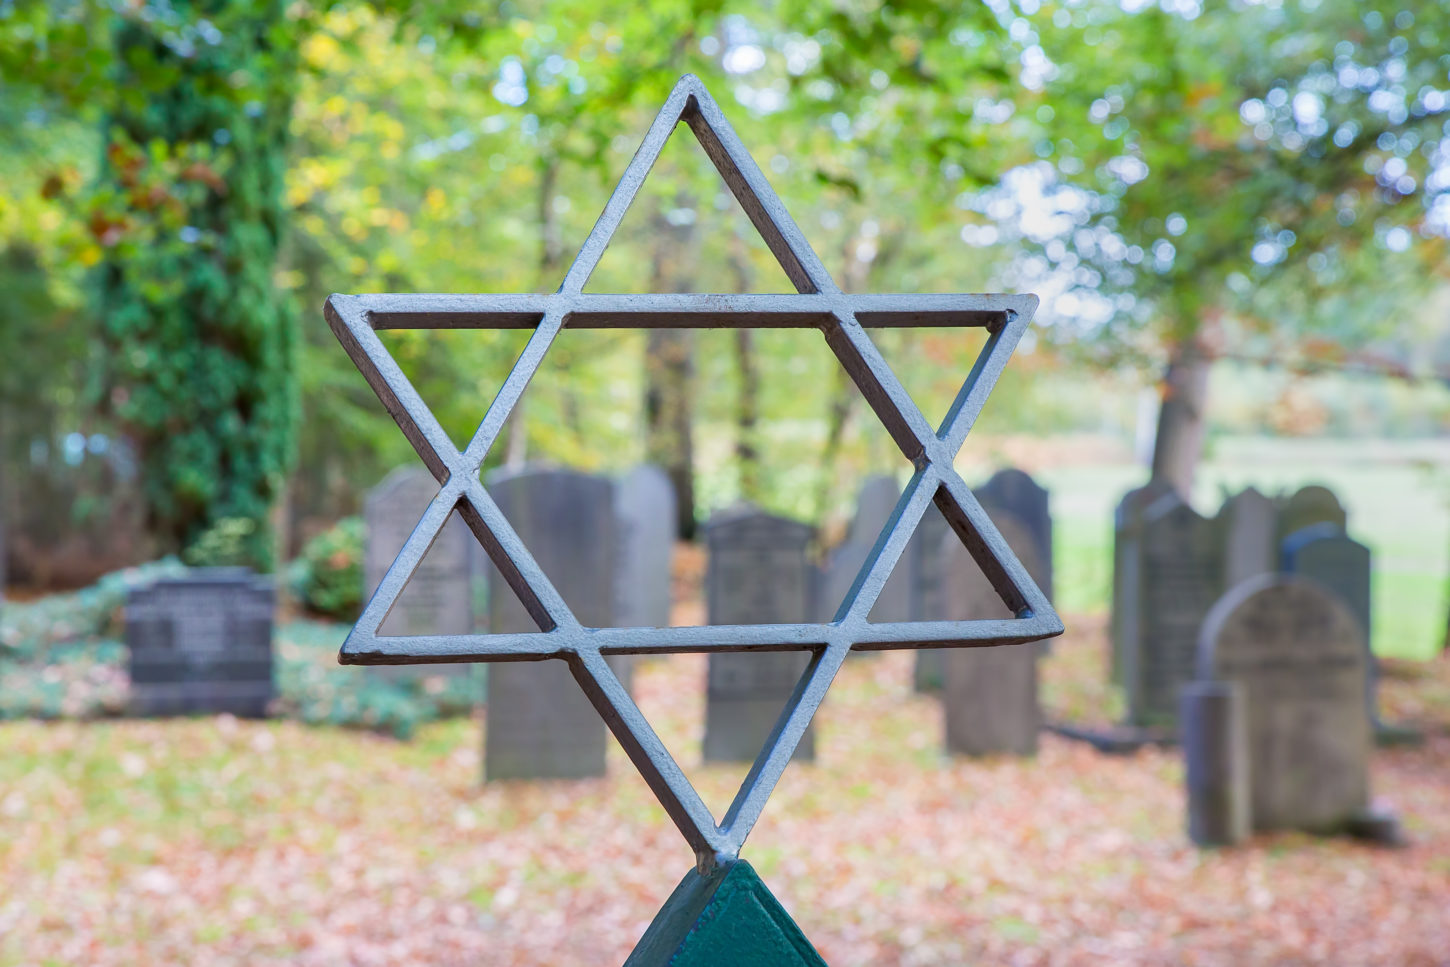 Jewish graveyard with star of David and trees. I took this photo of a jewish cemetery in my hometown Delden in the Netherlands.